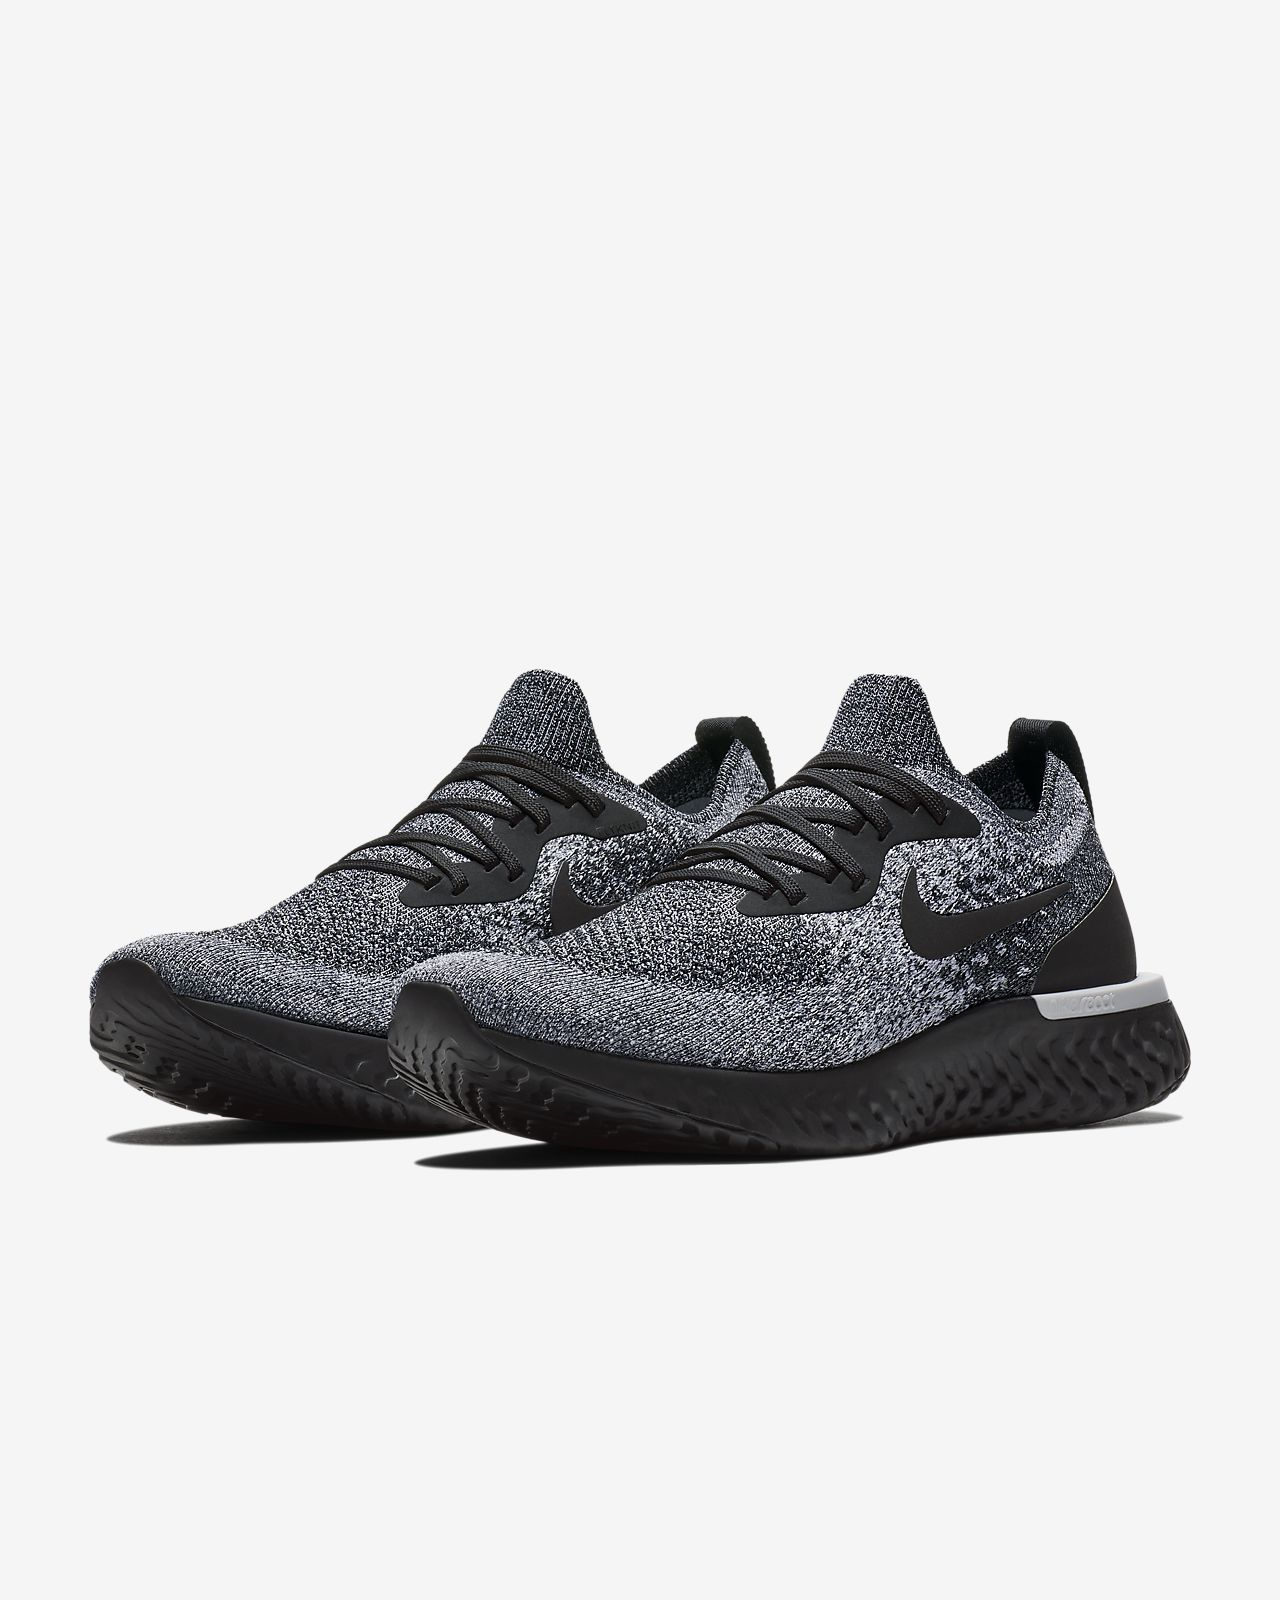 new product d0bc3 bc310 Men s Running Shoe. Nike Epic React Flyknit